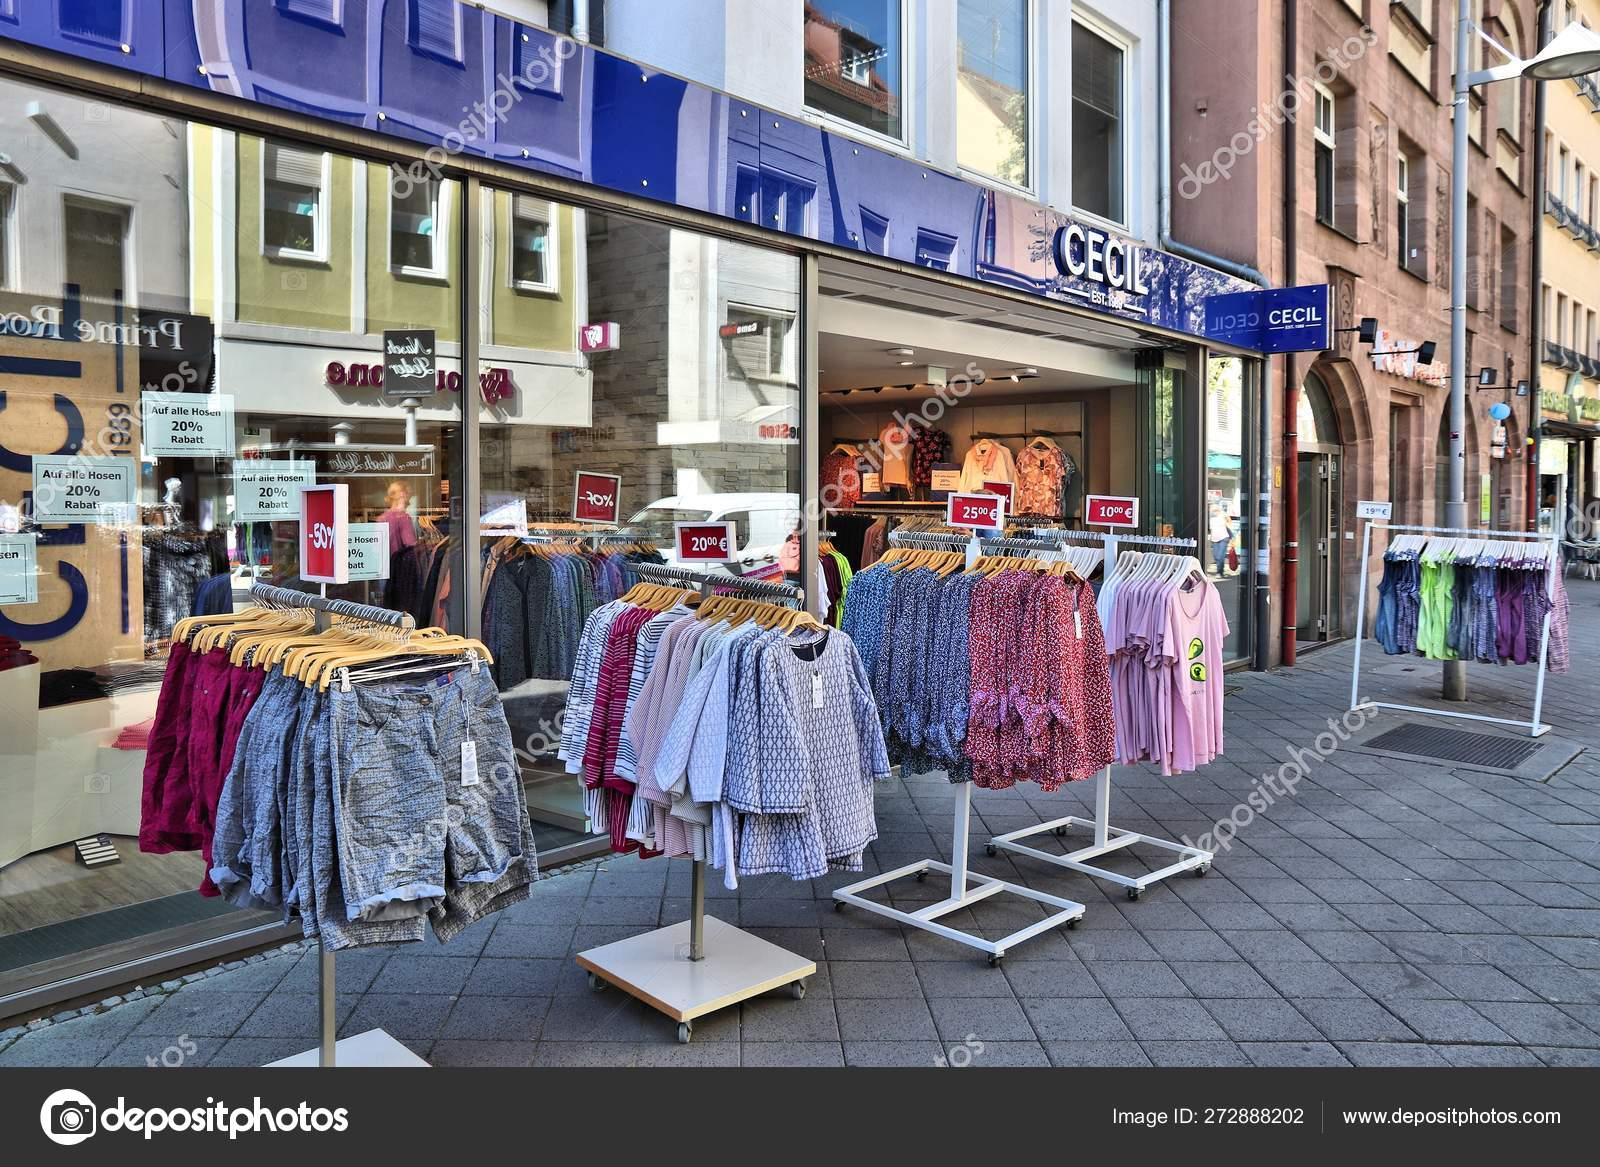 new photos where can i buy exclusive deals Nuremberg Cecil shop – Stock Editorial Photo © tupungato ...